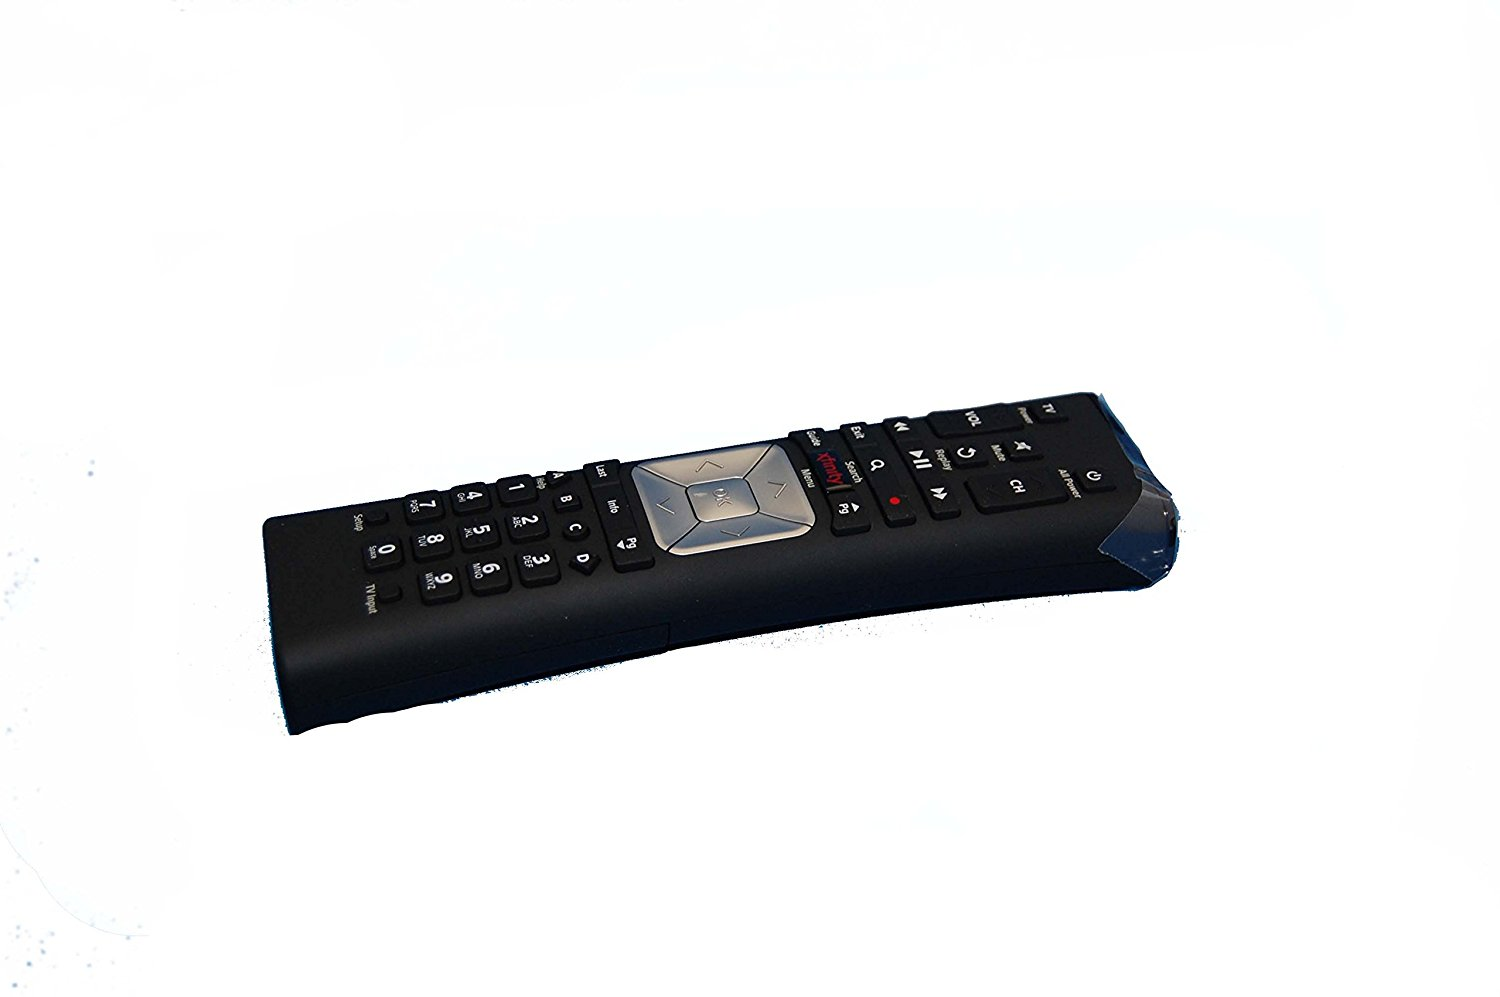 Comcast Xr5 Rf Remote Control X1 W Backlight Version V4 U